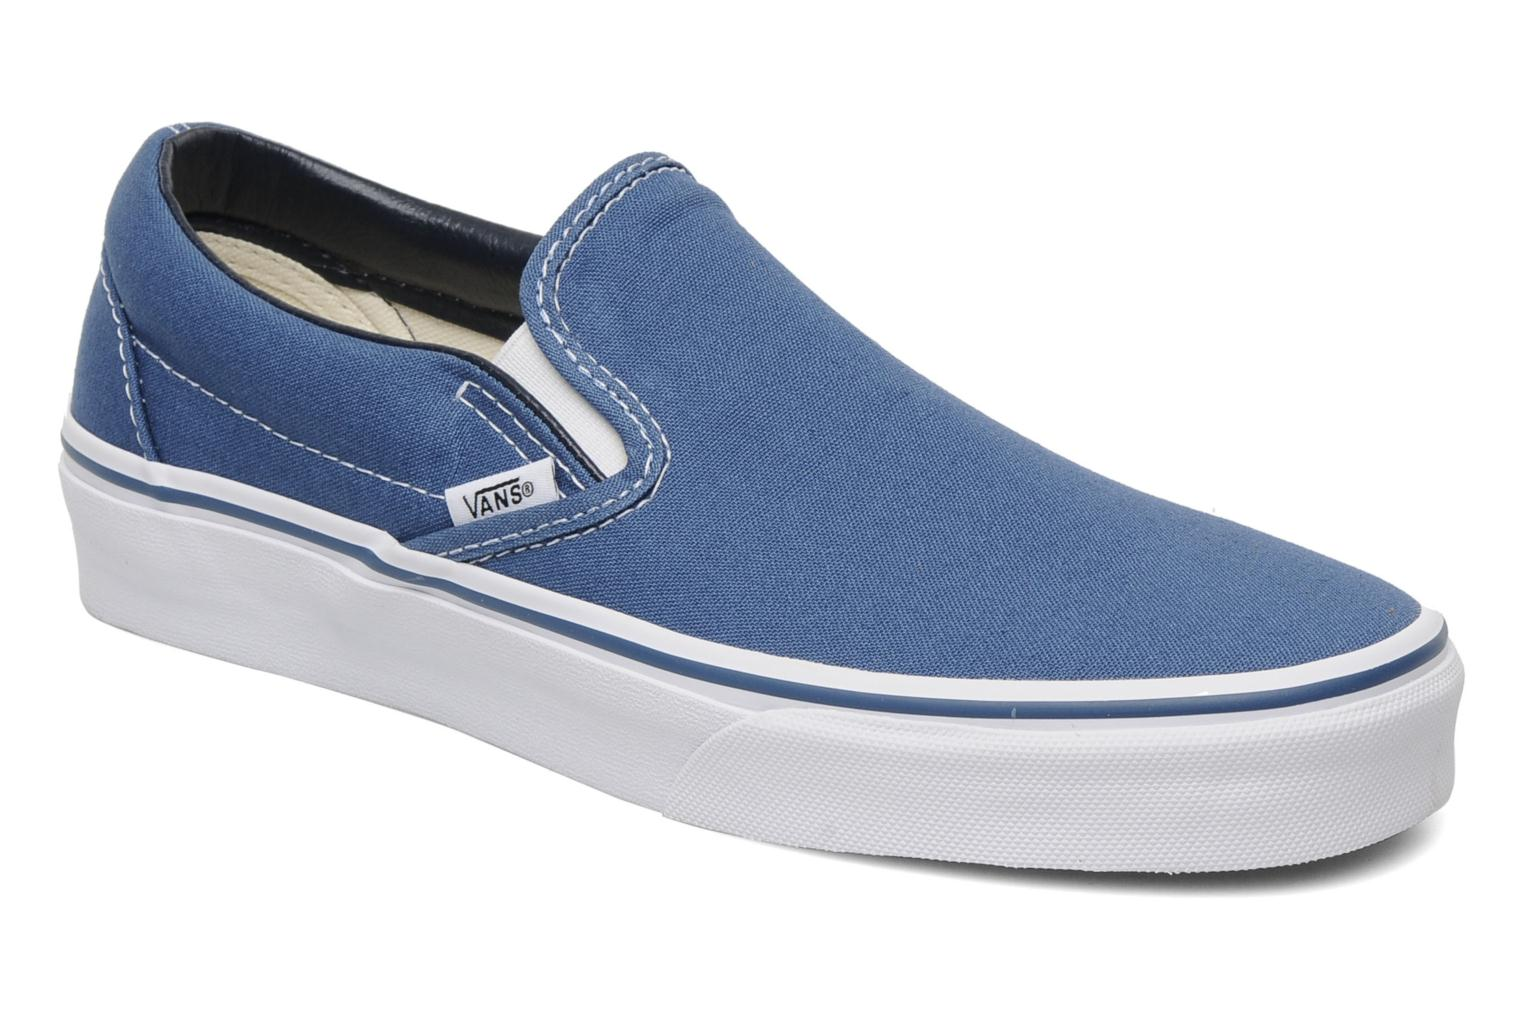 Vans Homme Estate Bleu Checkerboard Classic Slip On Baskets yYRTW4IjP